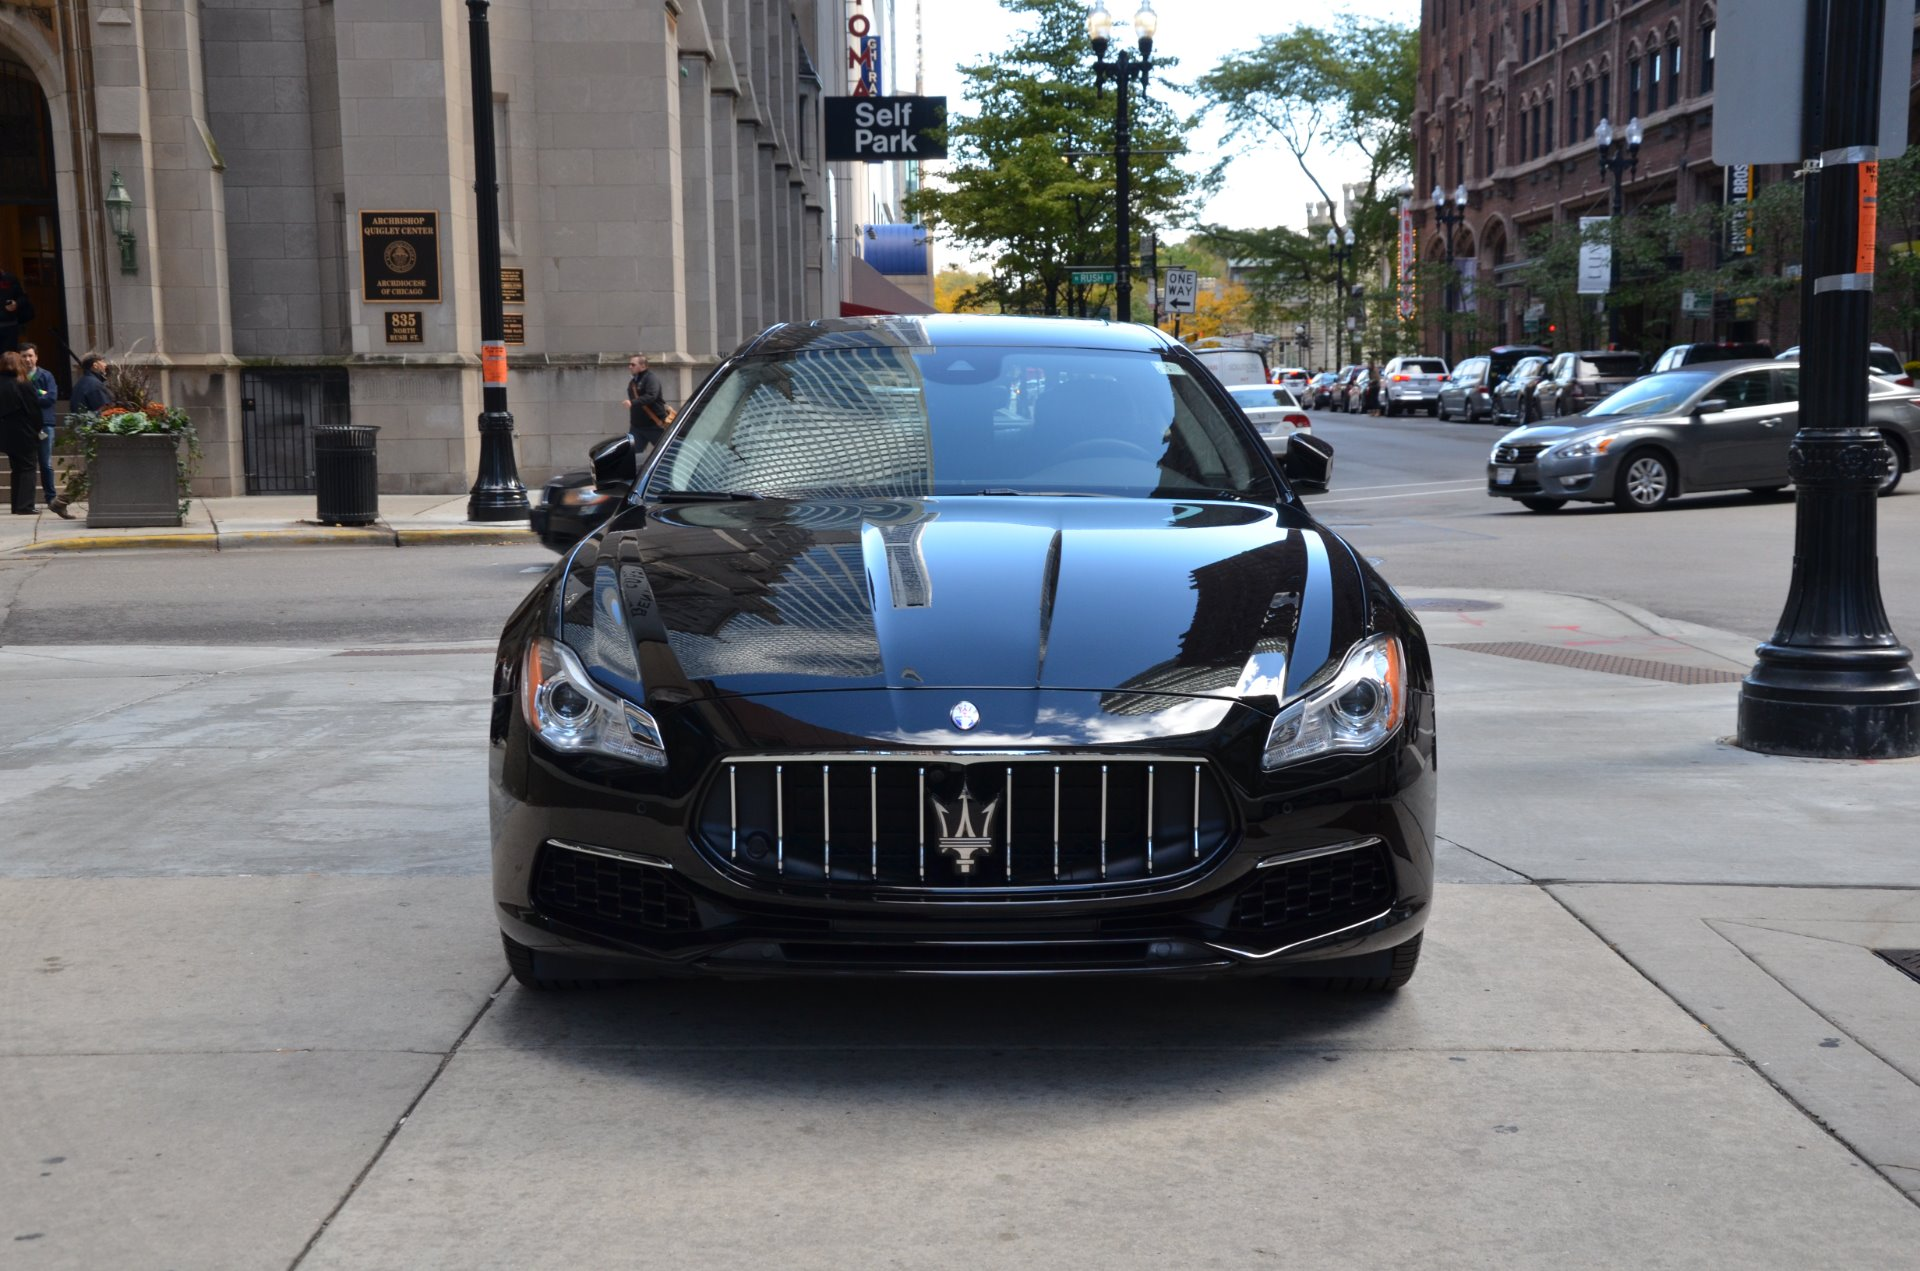 2017 maserati quattroporte sq4 s q4 granlusso stock m527 for sale near chicago il il. Black Bedroom Furniture Sets. Home Design Ideas